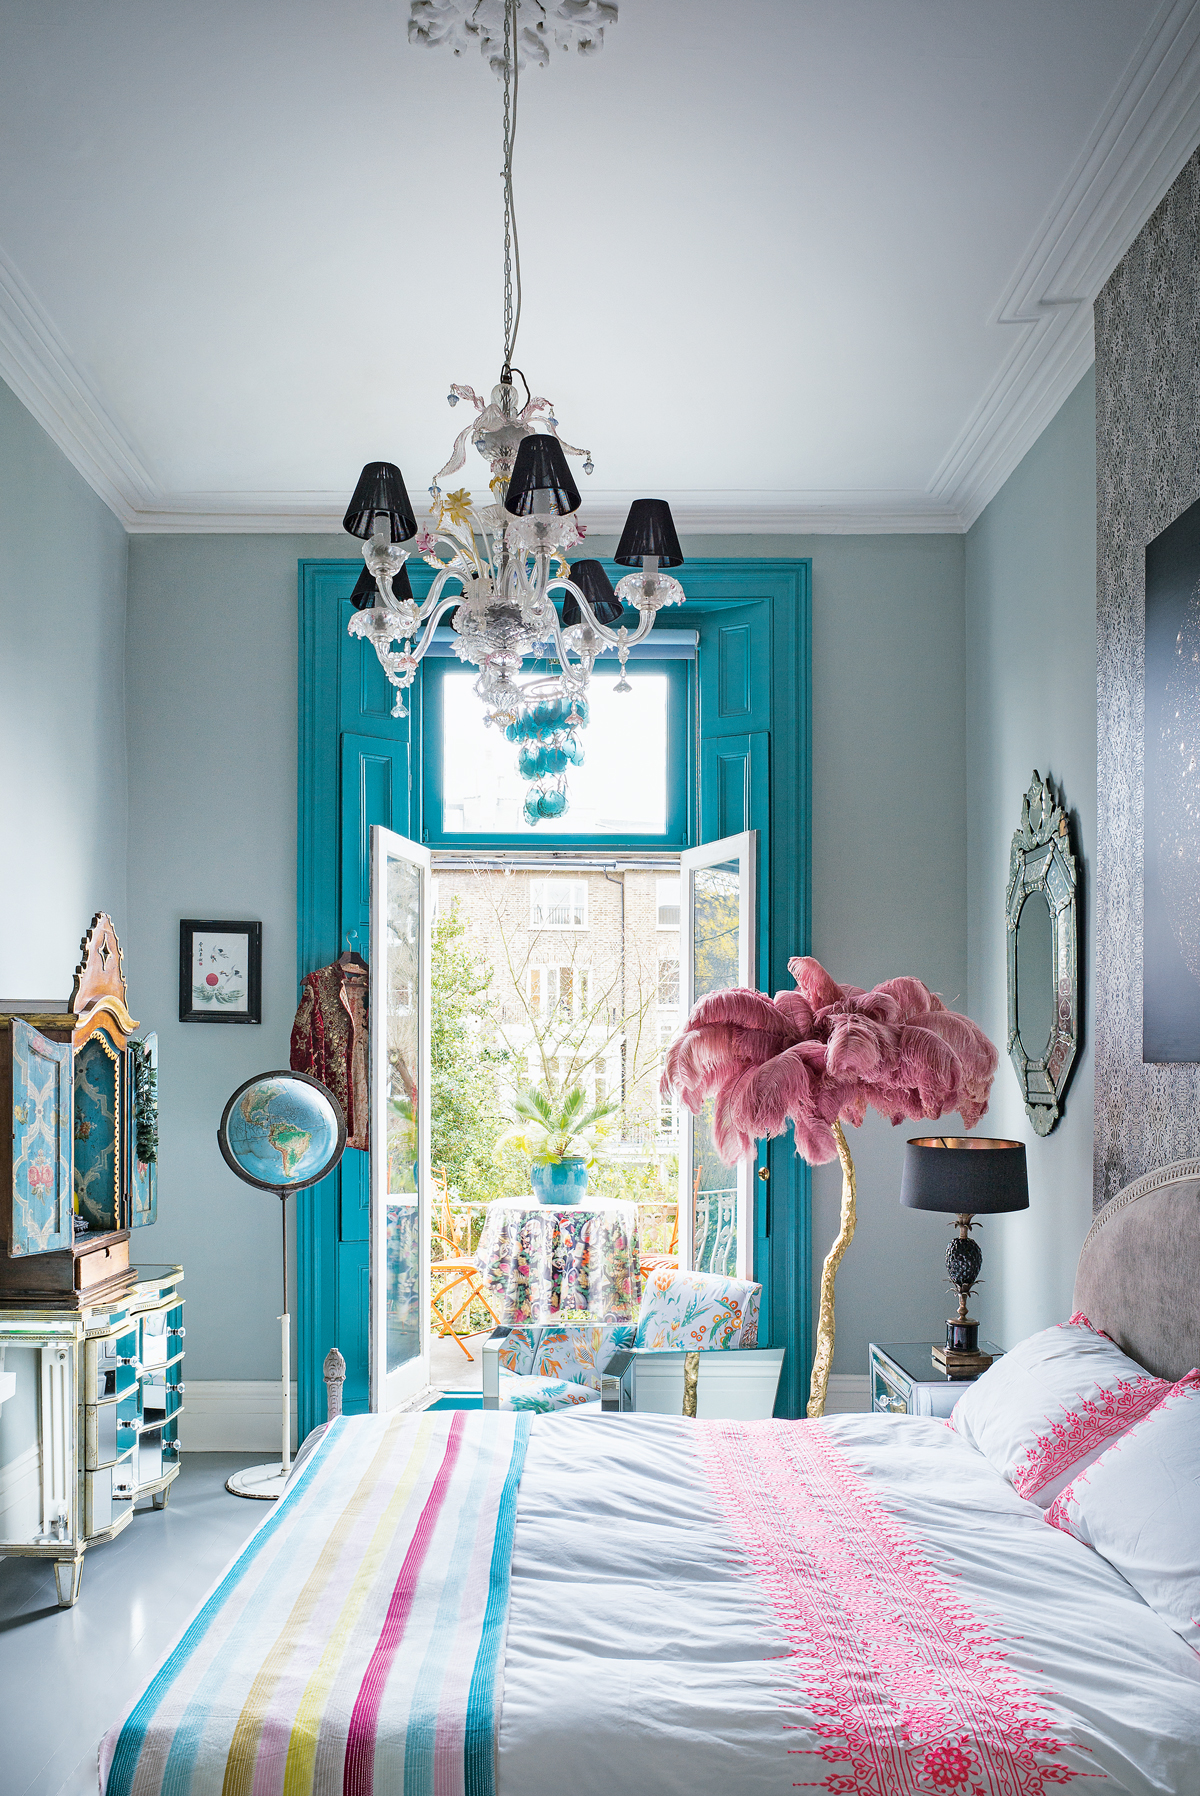 How To Get The Eclectic Look